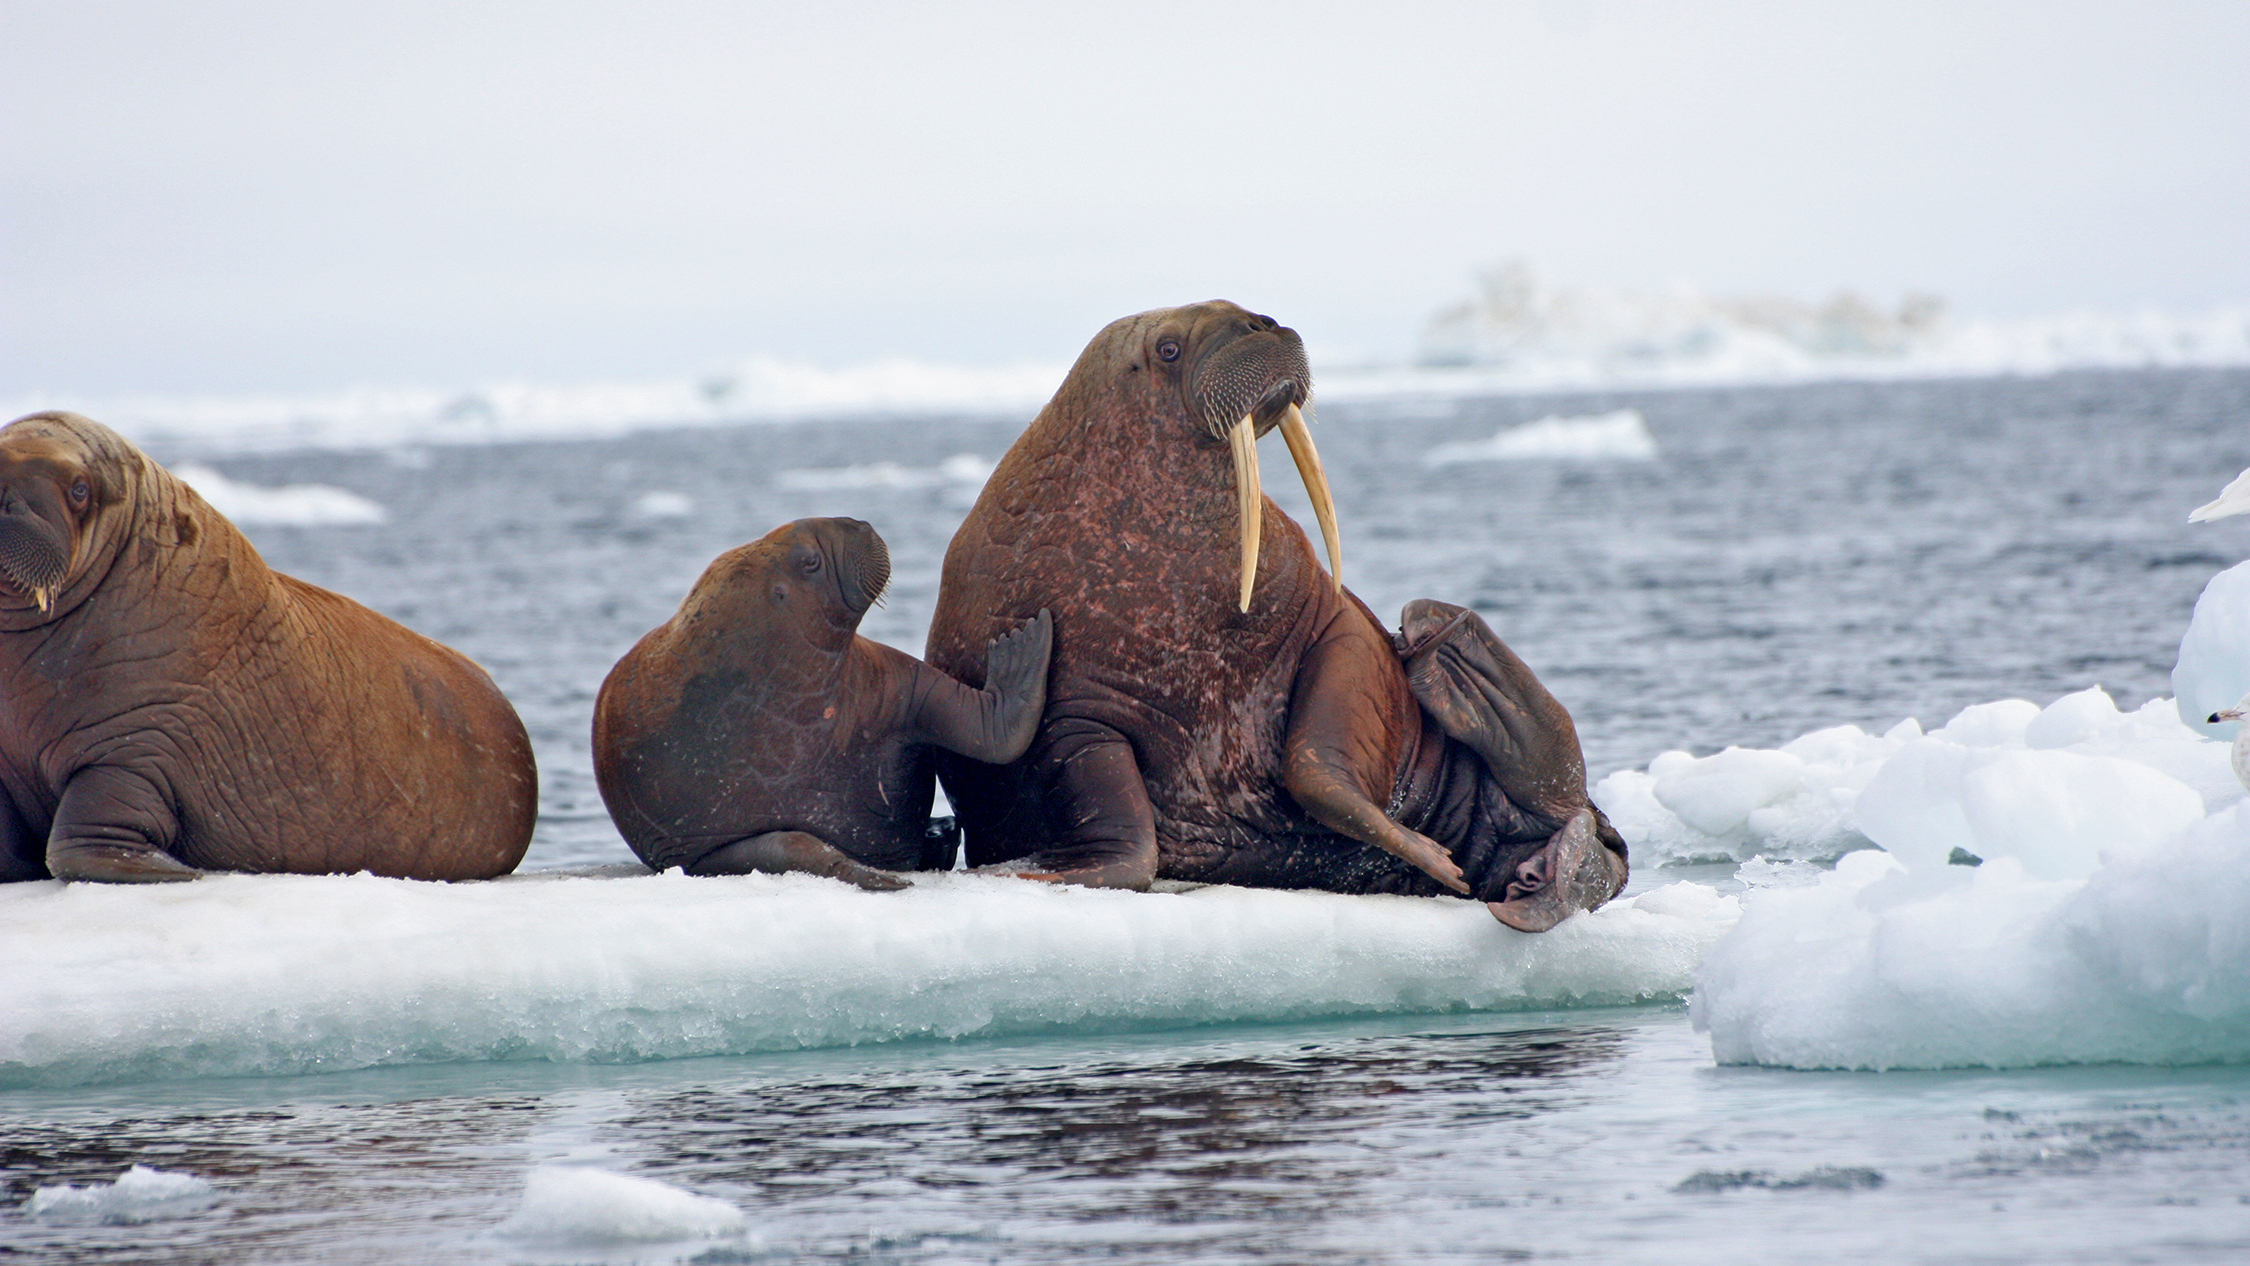 Areas such as the Hanna Shoal in the Chukchi Sea are essential habitat for walruses, which rest in family groups between foraging and migrating.